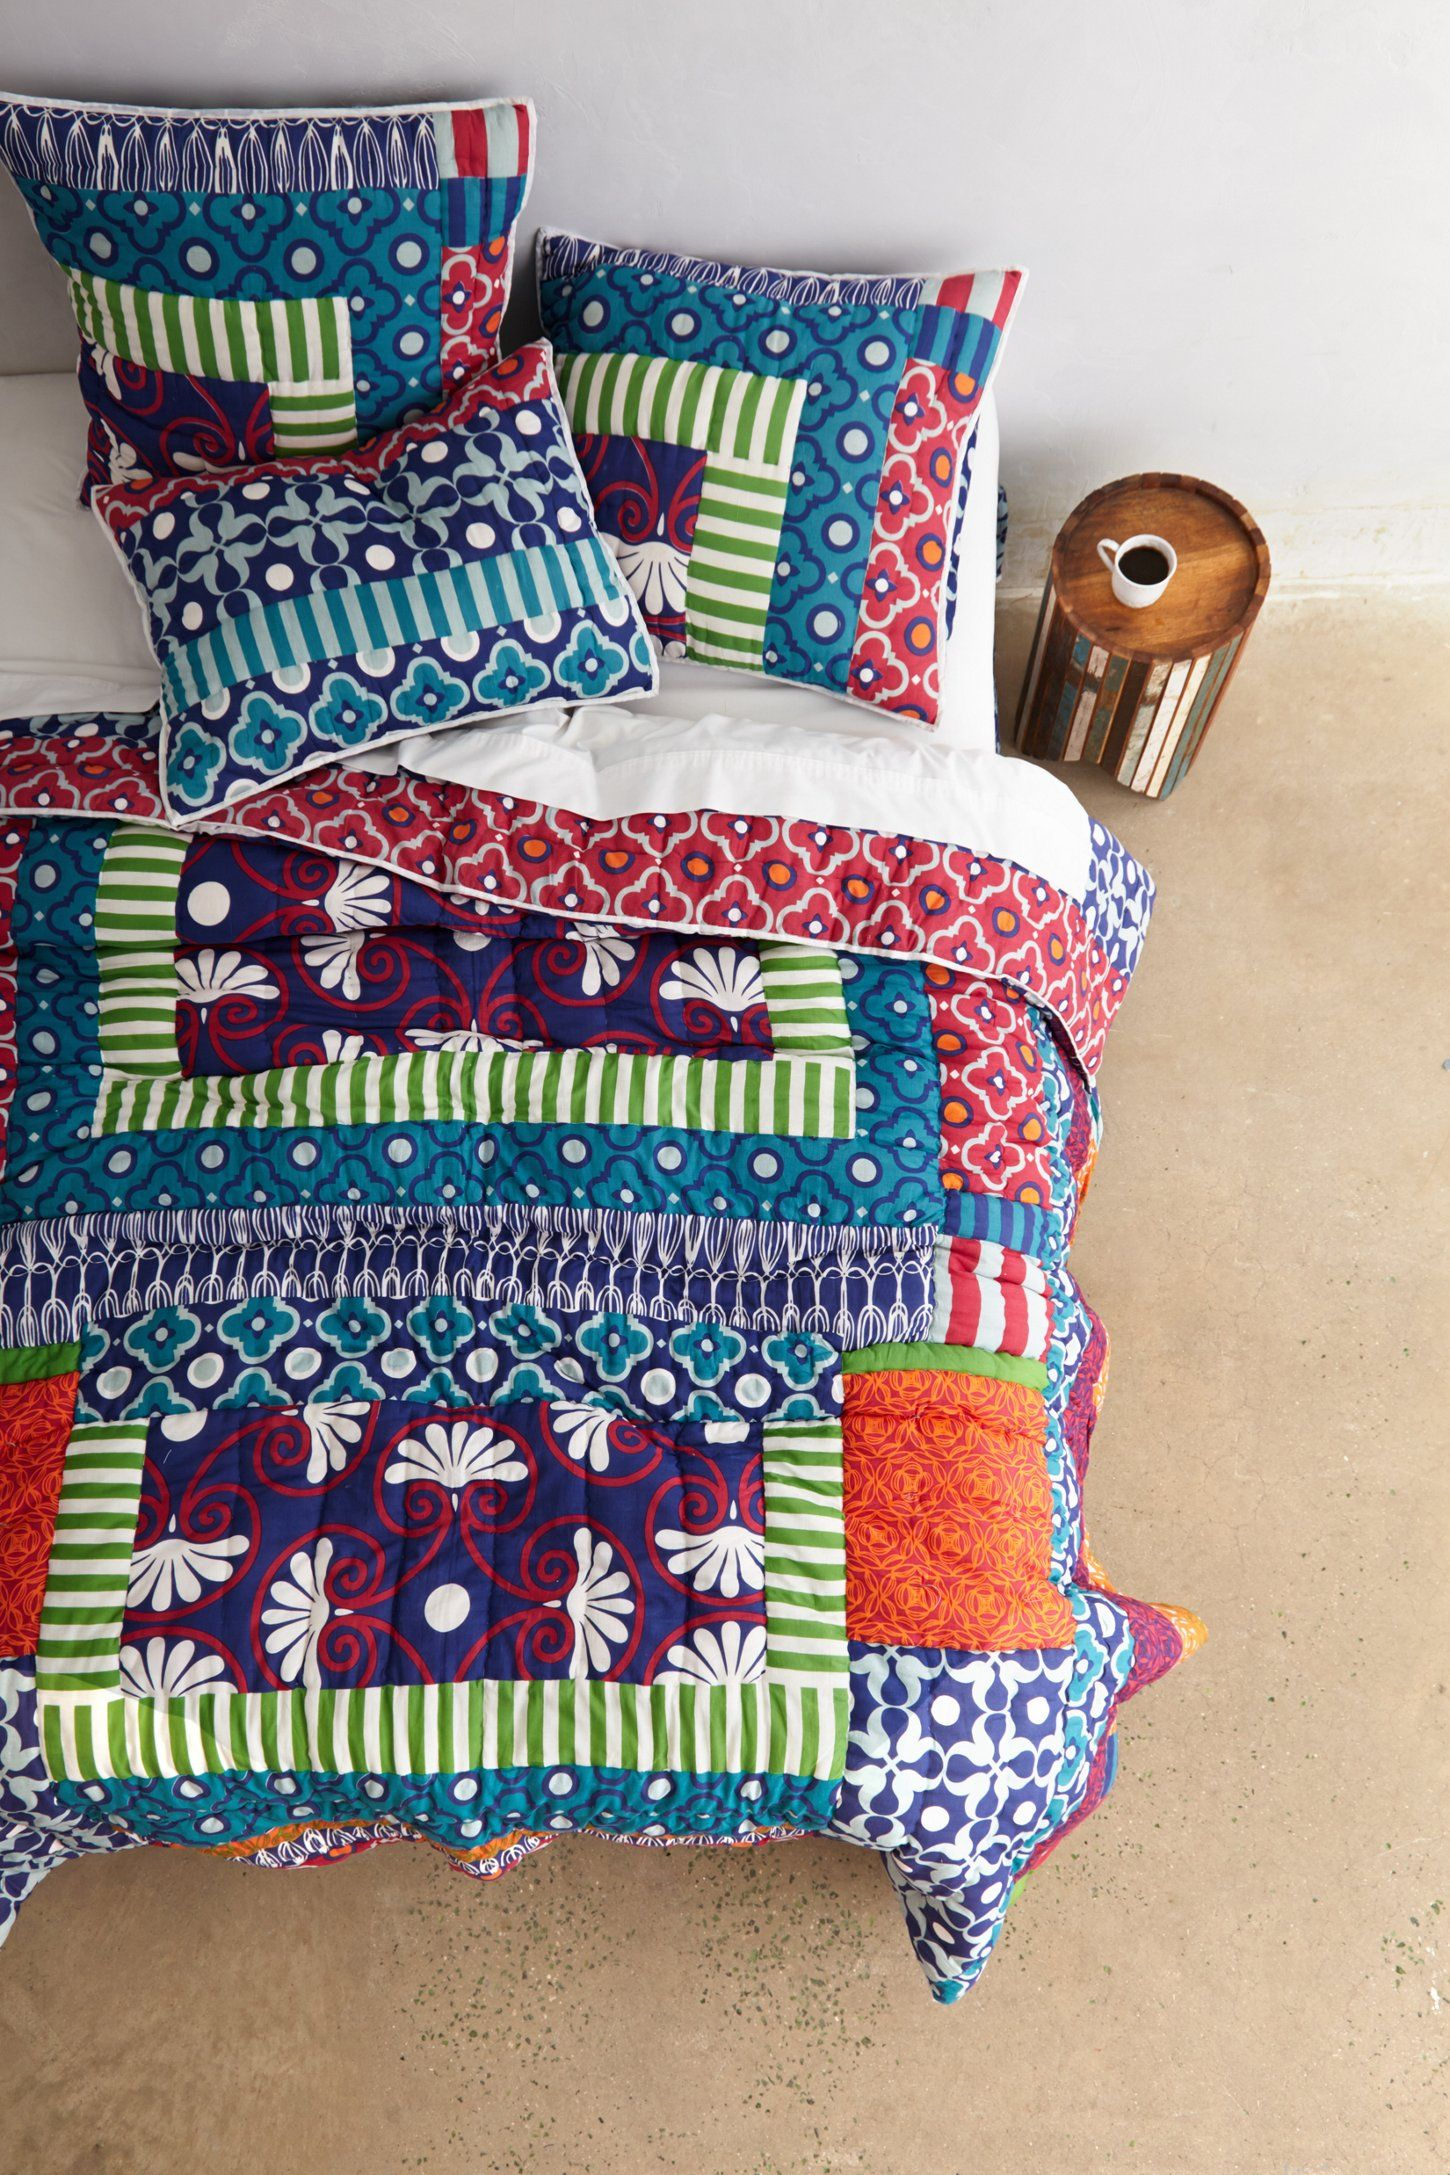 Queen Bed In 10x10 Room: - Part Of Our Hothouse Quilt Collection